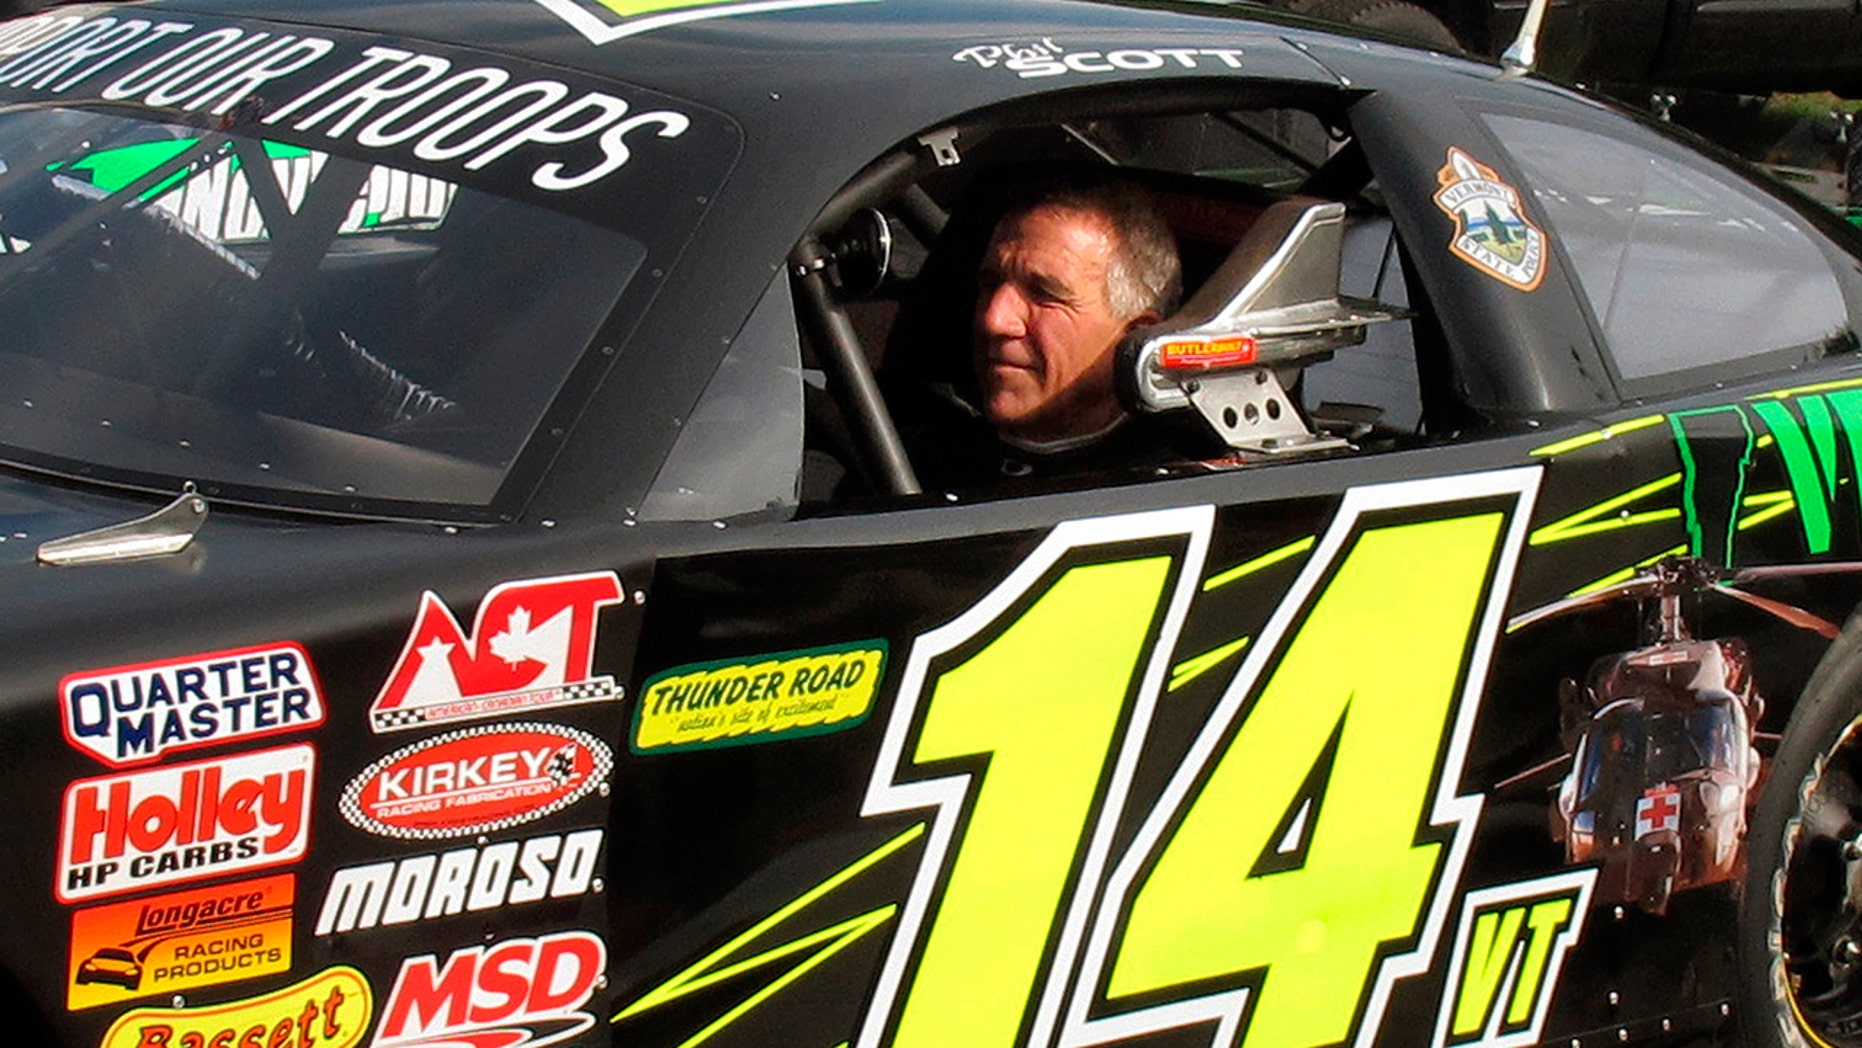 Scott at Thunder Road Speedbowl in July 2017.